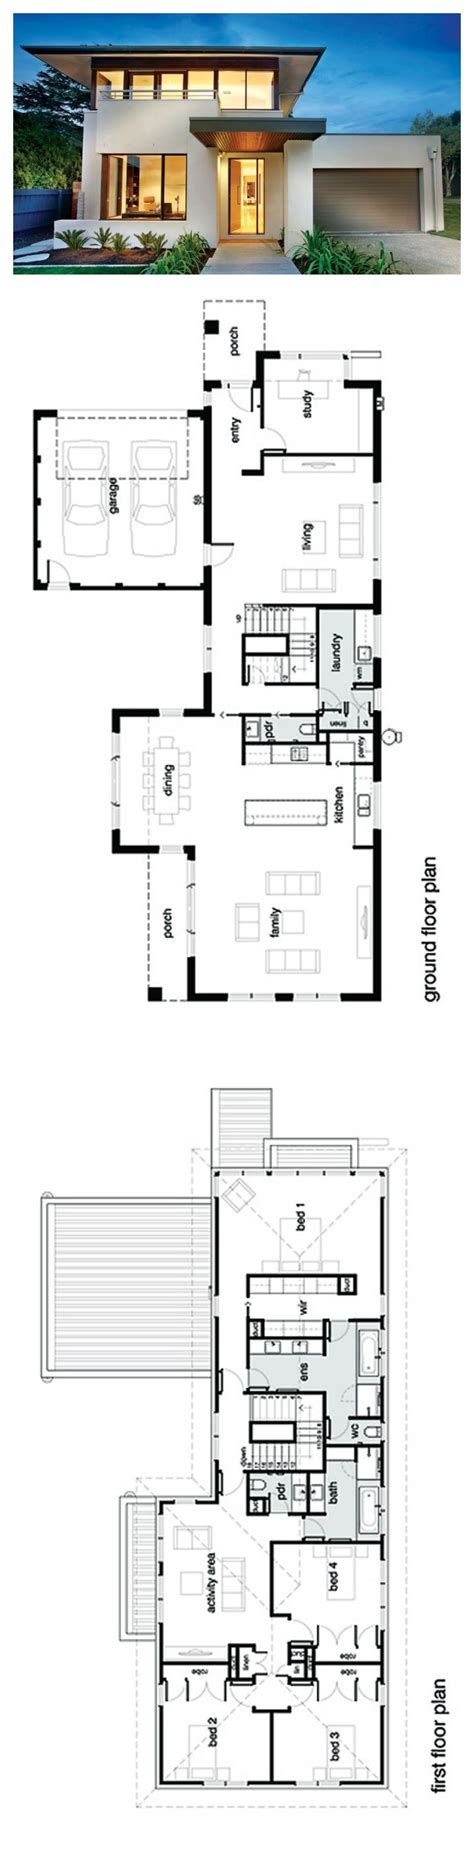 modern home floor plans the 25 best ideas about modern house plans on pinterest